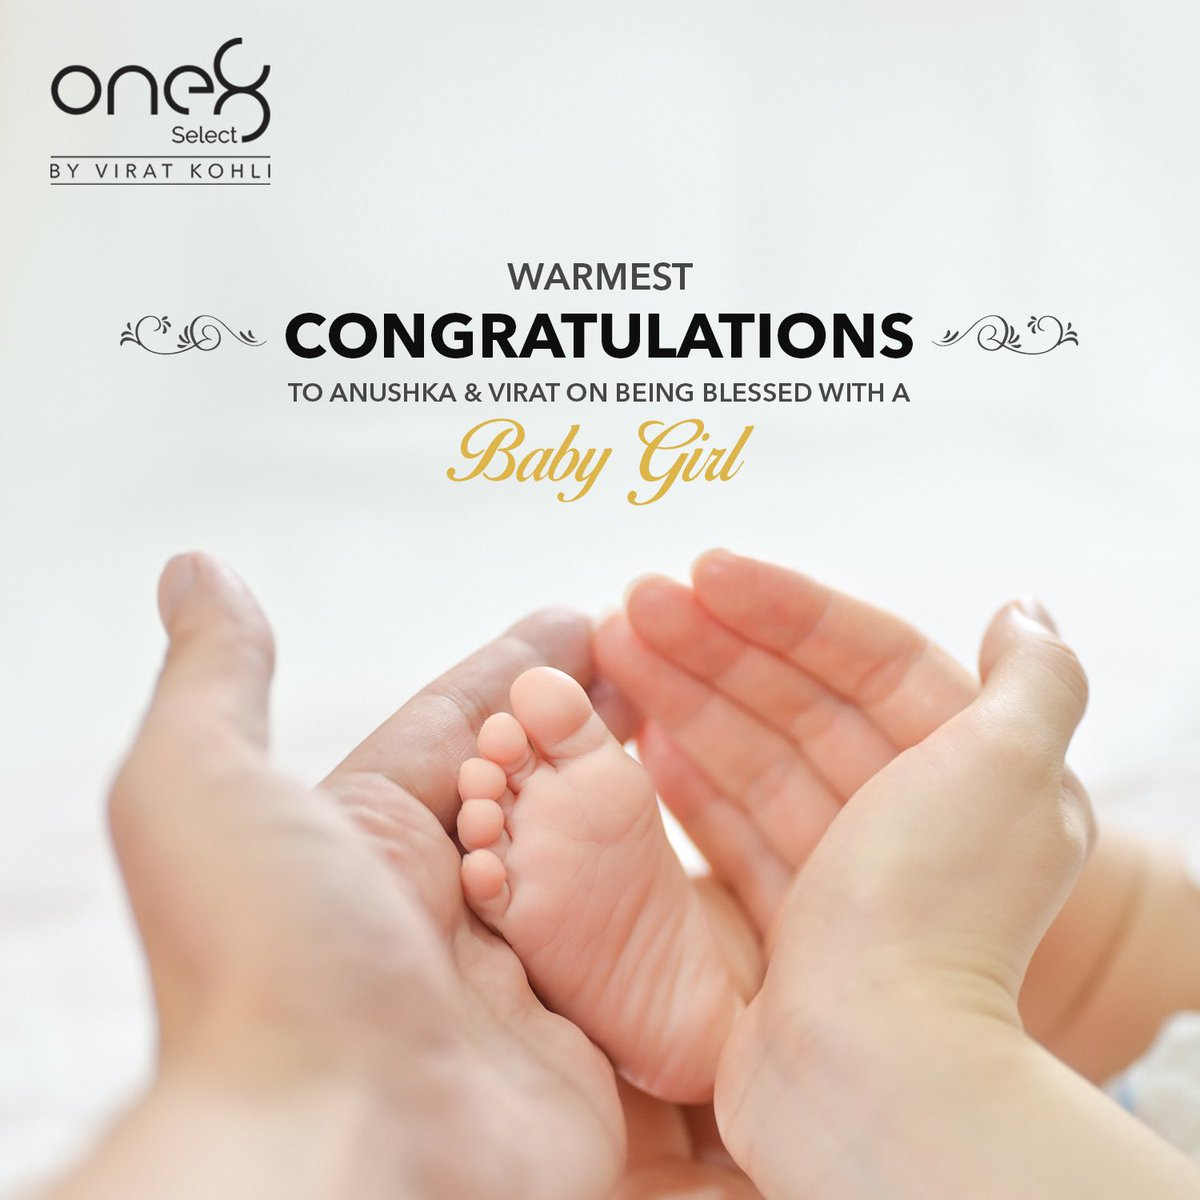 Congratulations to the proud new parents @imVkohli @AnushkaSharma on the arrival of their baby girl. May she be blessed with great health, love and joy. #one8 @one8world  . . #viratkohli #congratulations #anushkasharma #one8select #one8family #family #daughter #newborn #parents